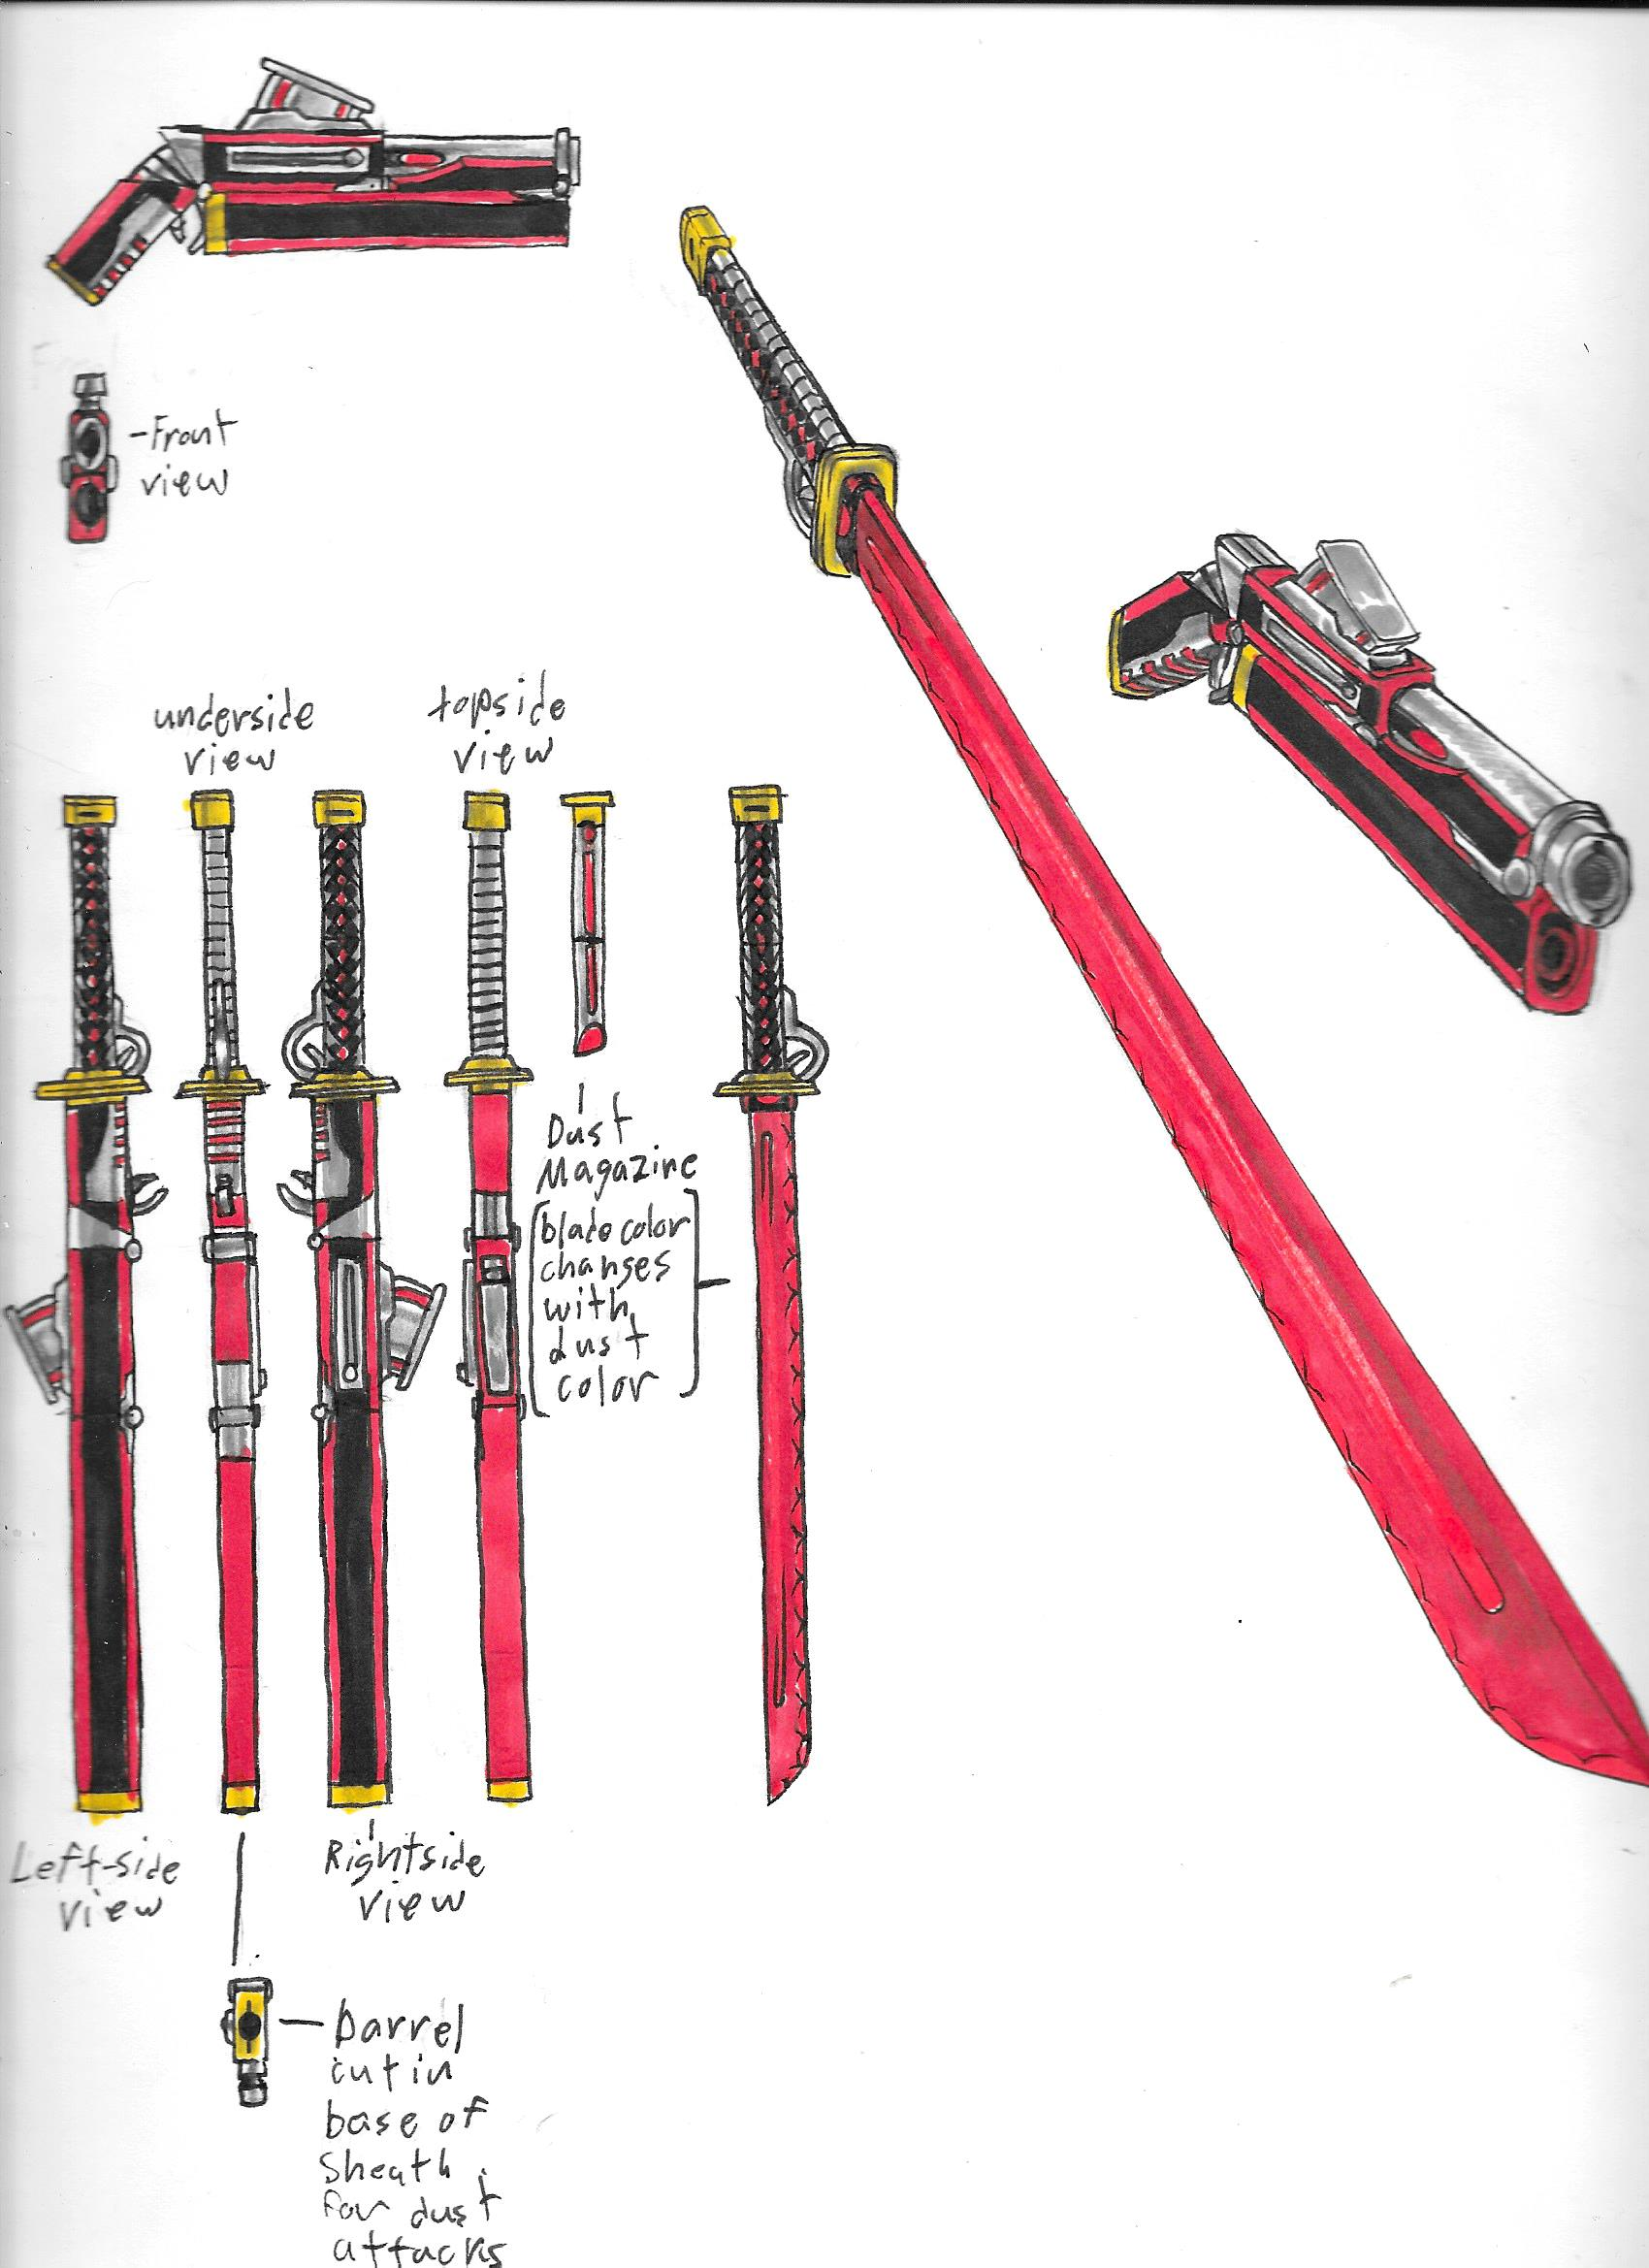 Rwby Weapon Diagram By Brothercaptain Steve On Deviantart